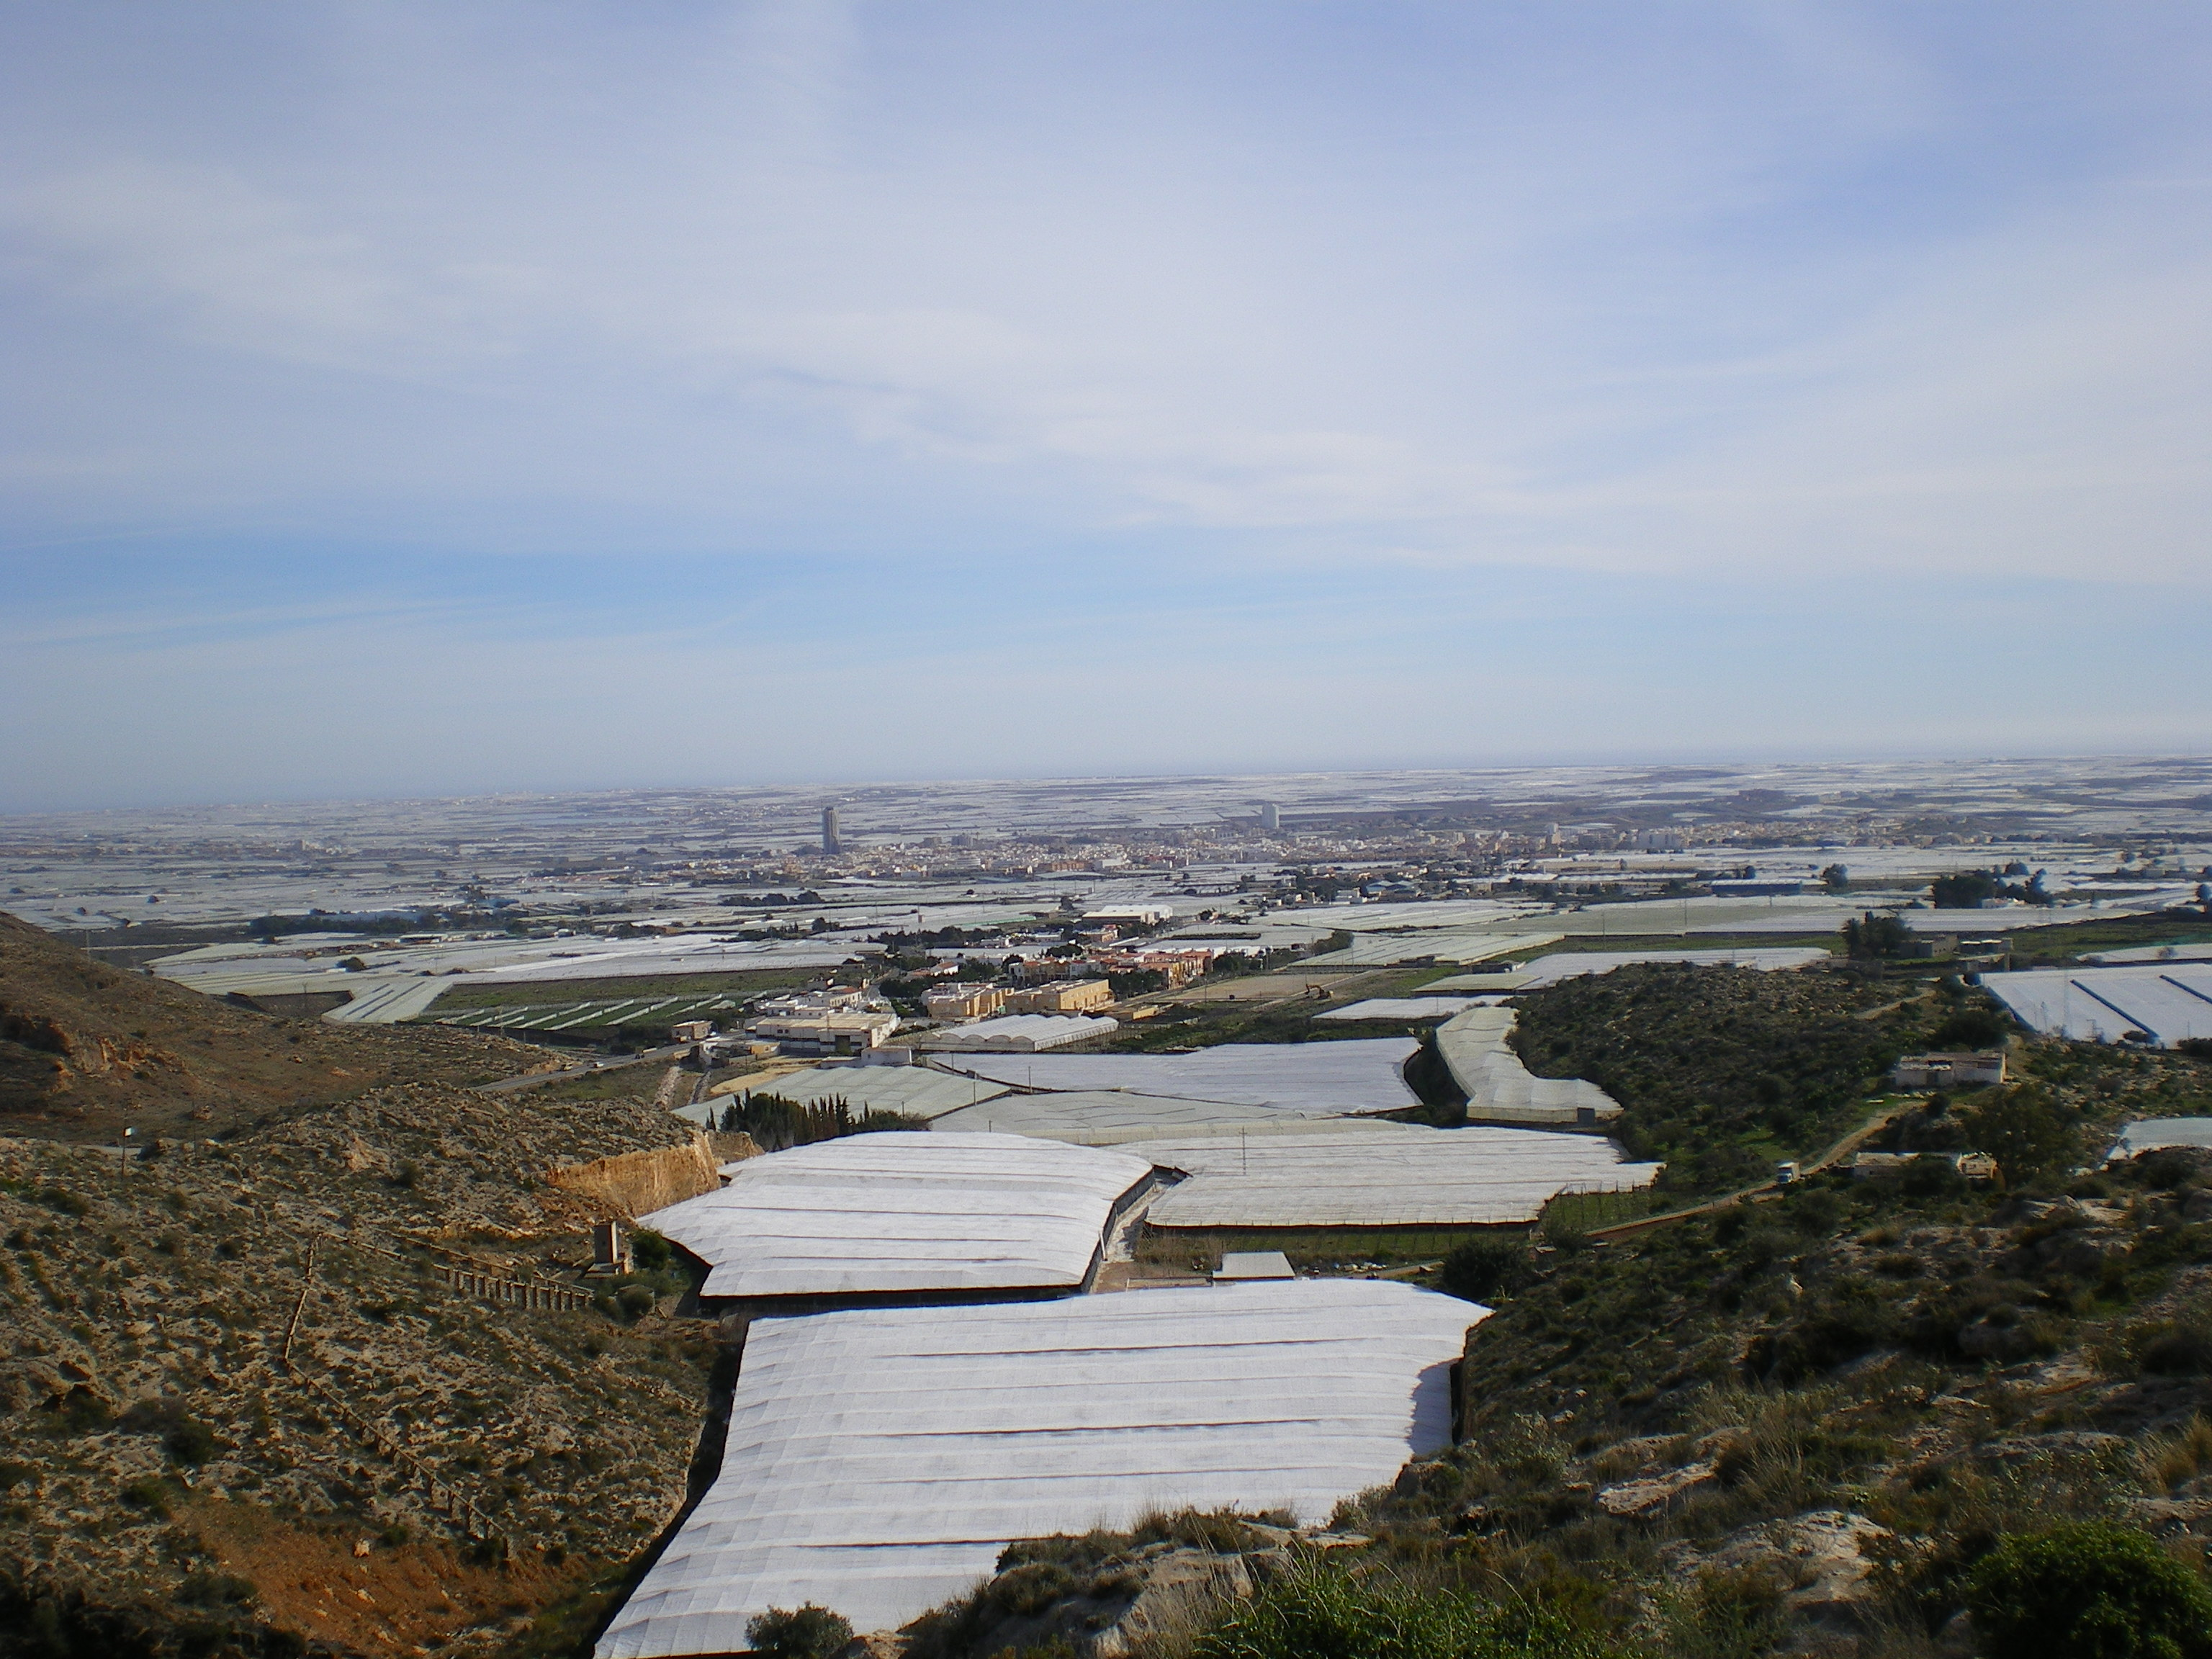 File mar pl stico el wikimedia commons - El ejido almeria ...